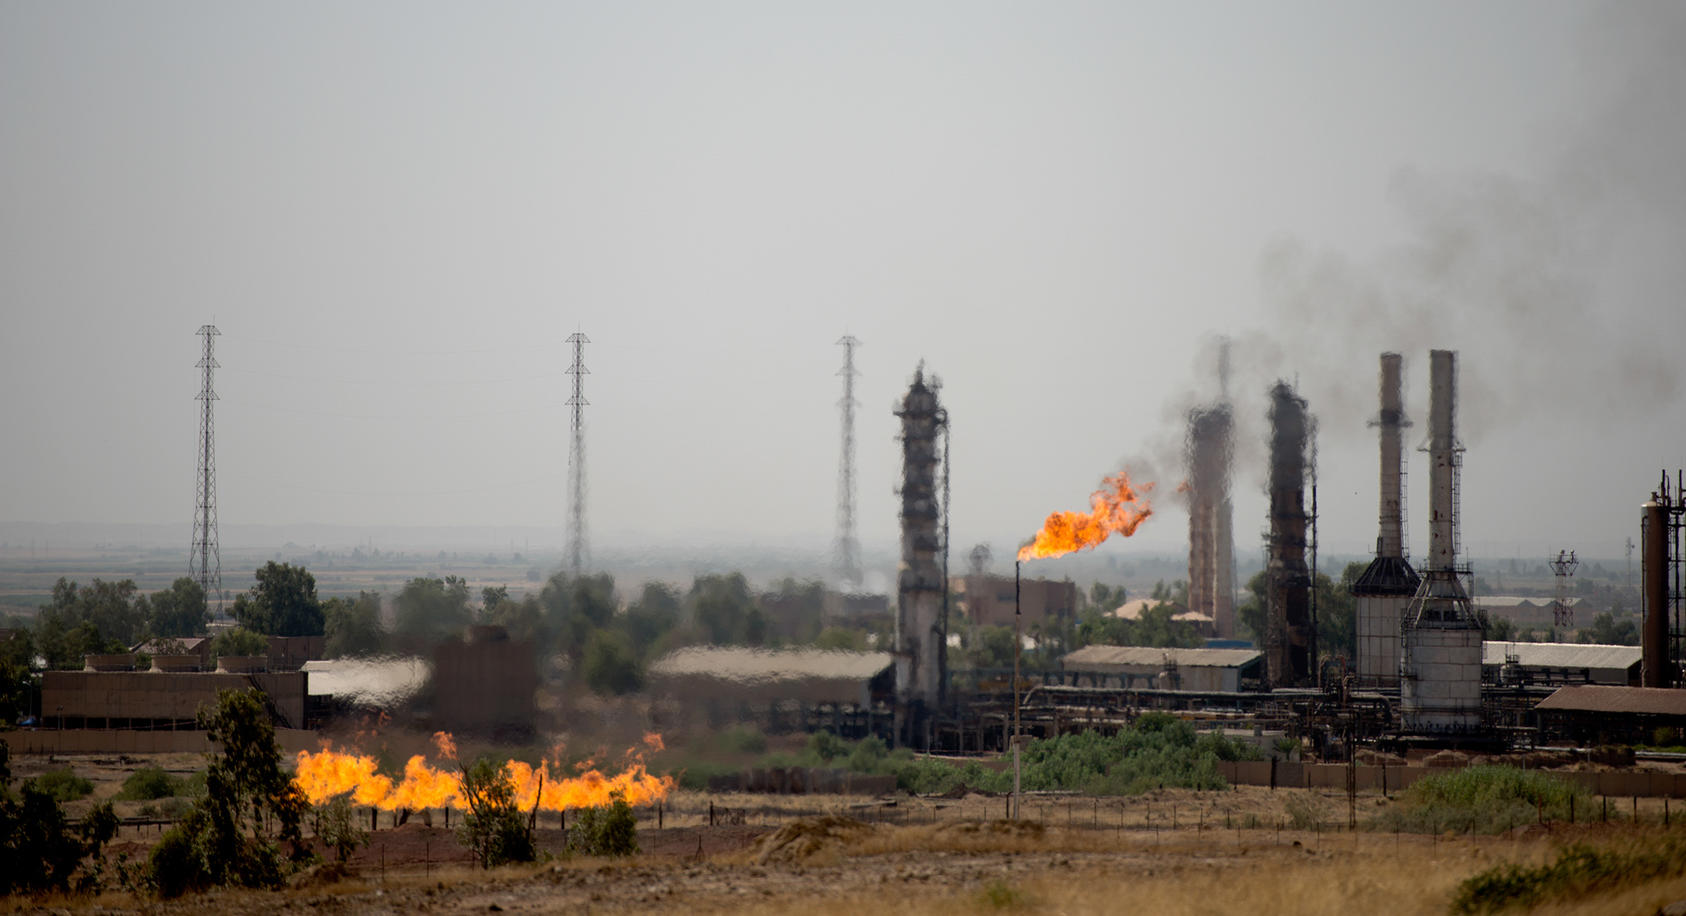 An oil field in the Kirkuk region of Iraq, which supplies much of the wealth for the autonomous region of Kurdistan, Sept. 8, 2014. In a far-reaching deal with the potential to unite Iraq in the face of a Sunni insurgency, the government of Prime Minister Haider al-Abadi agreed on Dec. 2 to a long-term pact with the Kurds over how to divide the country's oil wealth and cooperate on fighting Islamic State extremists. (Andrea Bruce/The New York Times)